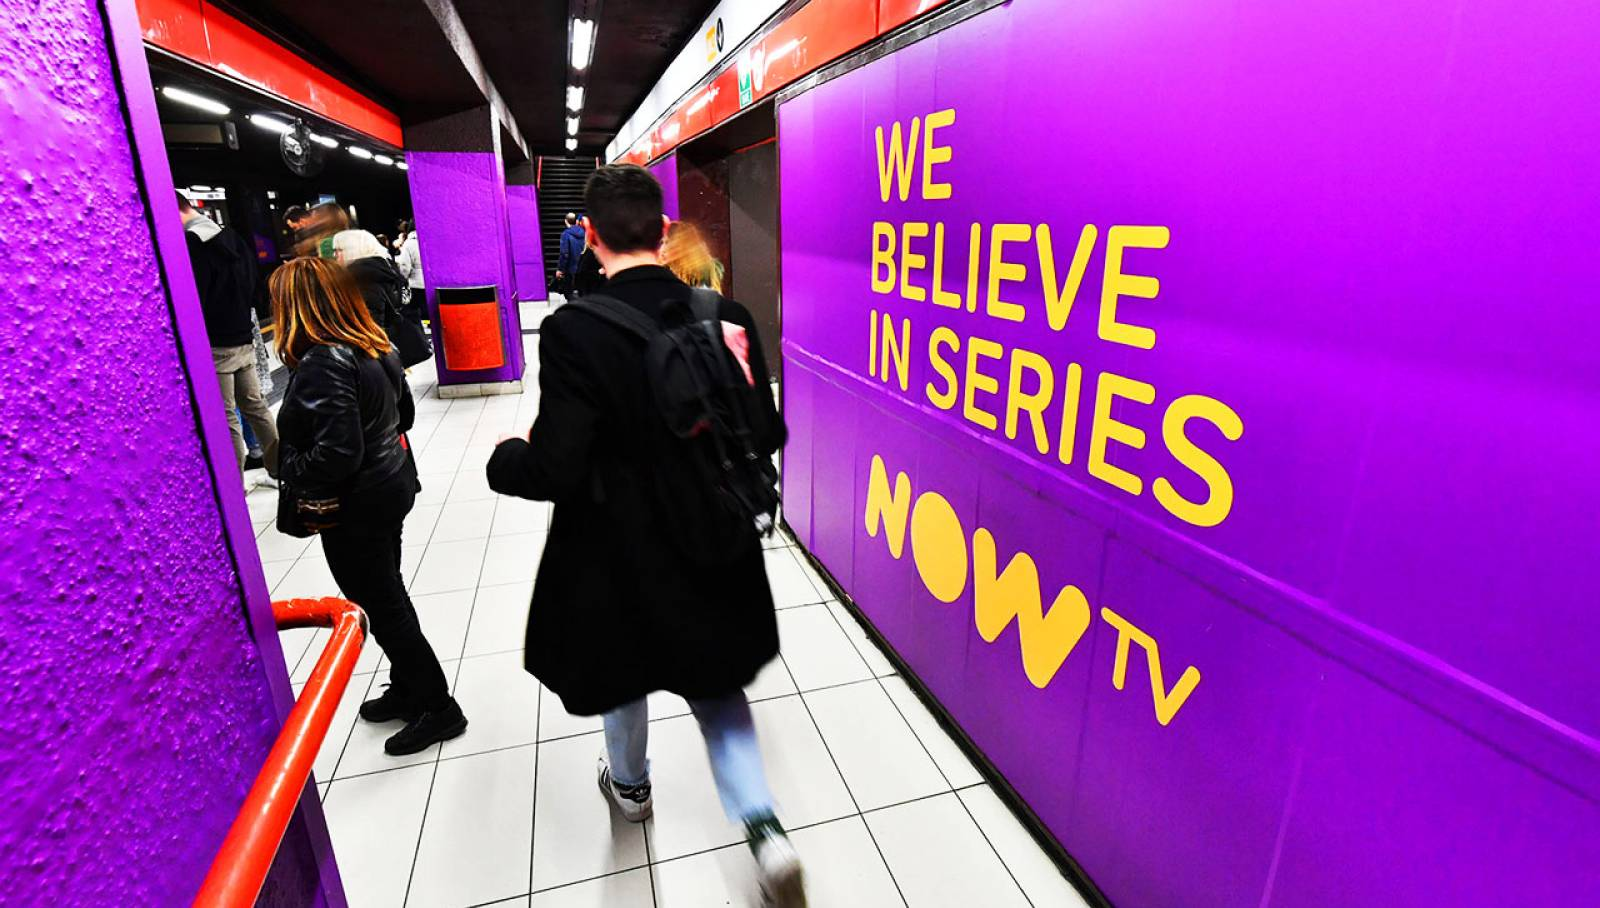 Underground advertising IGPDecaux Milan station domination for Game of Thrones Now TV